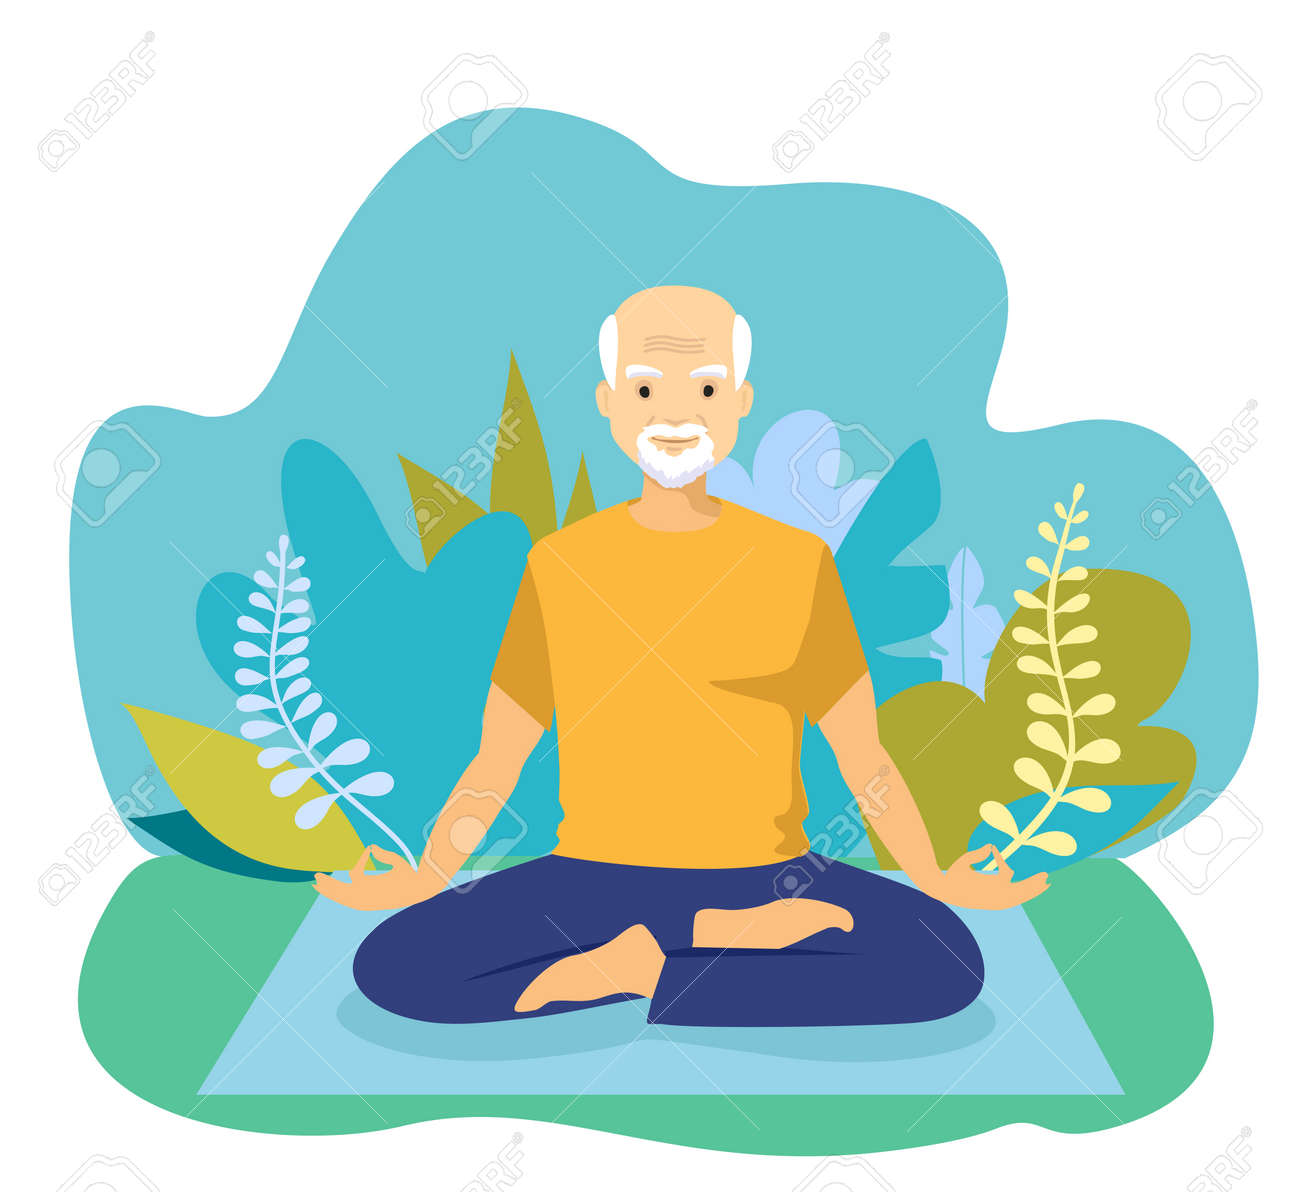 Elderly man doing yoga. Happy Retired concept. Happy relaxed chubby man practising Lotus yoga pose, meditating and doing hatha breathing exercise - 169650616